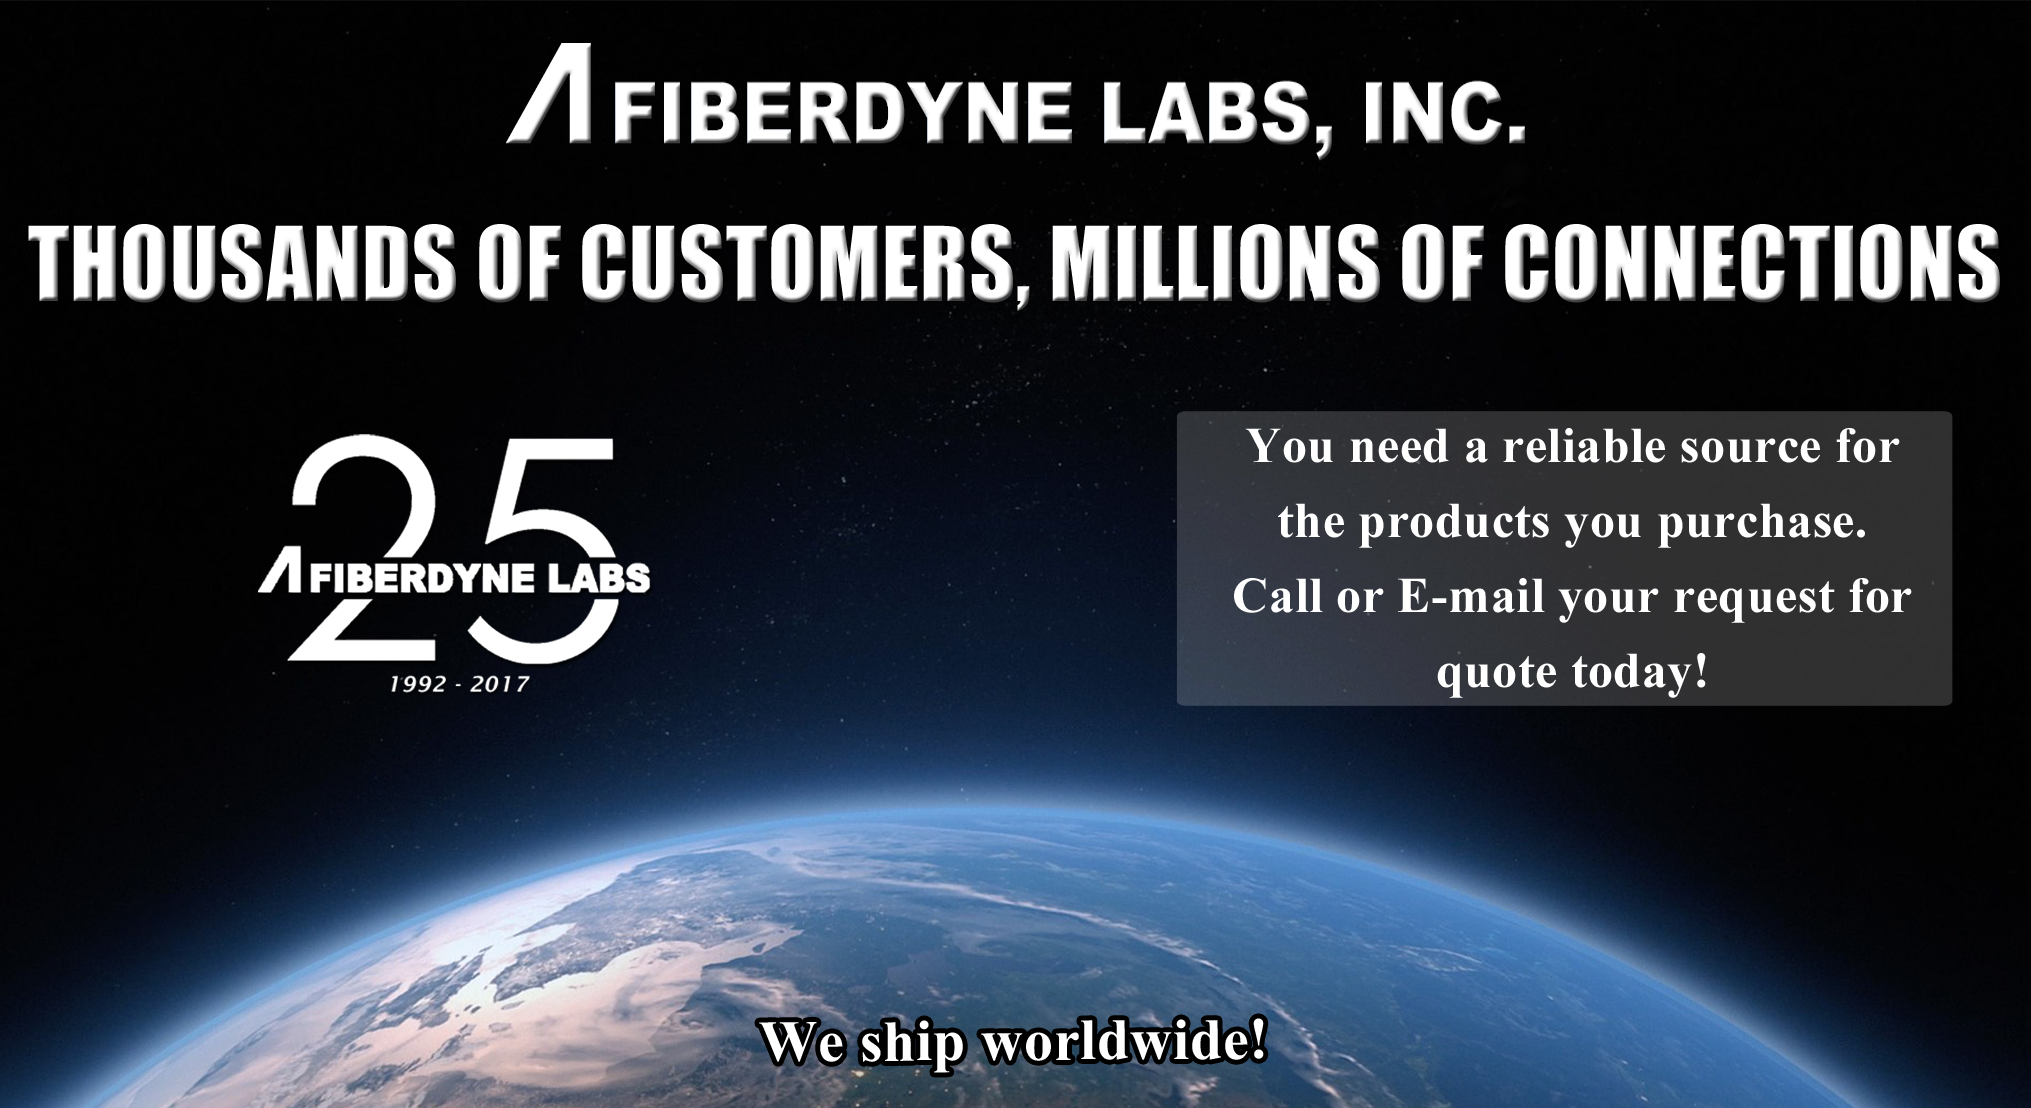 Thousands of Customers, Millions of Connections, we ship worldwide!